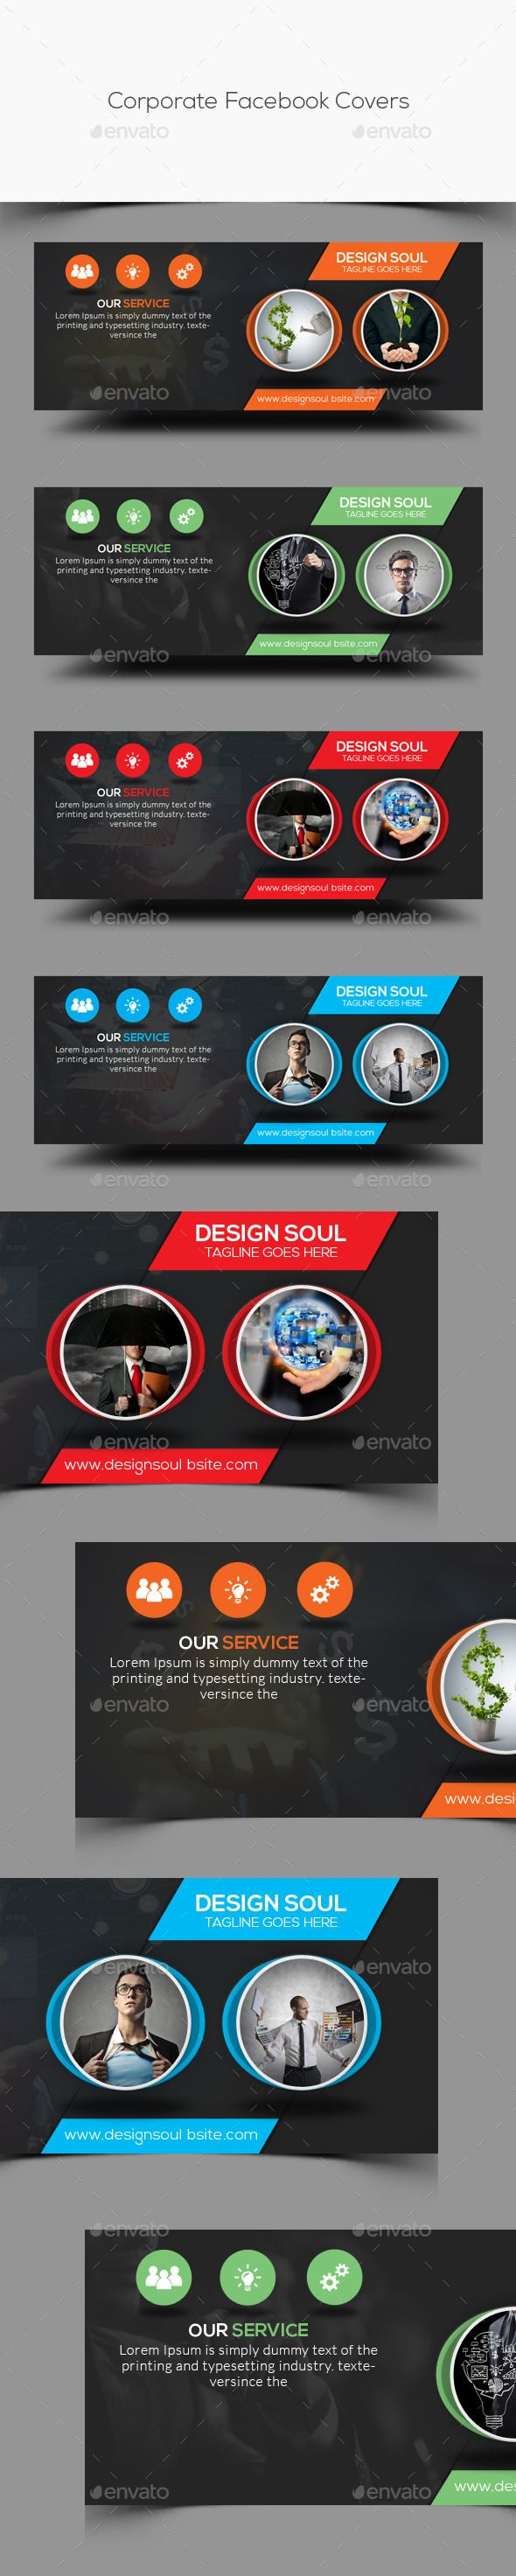 Corporate Facebook Covers PSD Template #design Download: http://graphicriver.net/item/corporate-facebook-covers/12491848?ref=ksioks